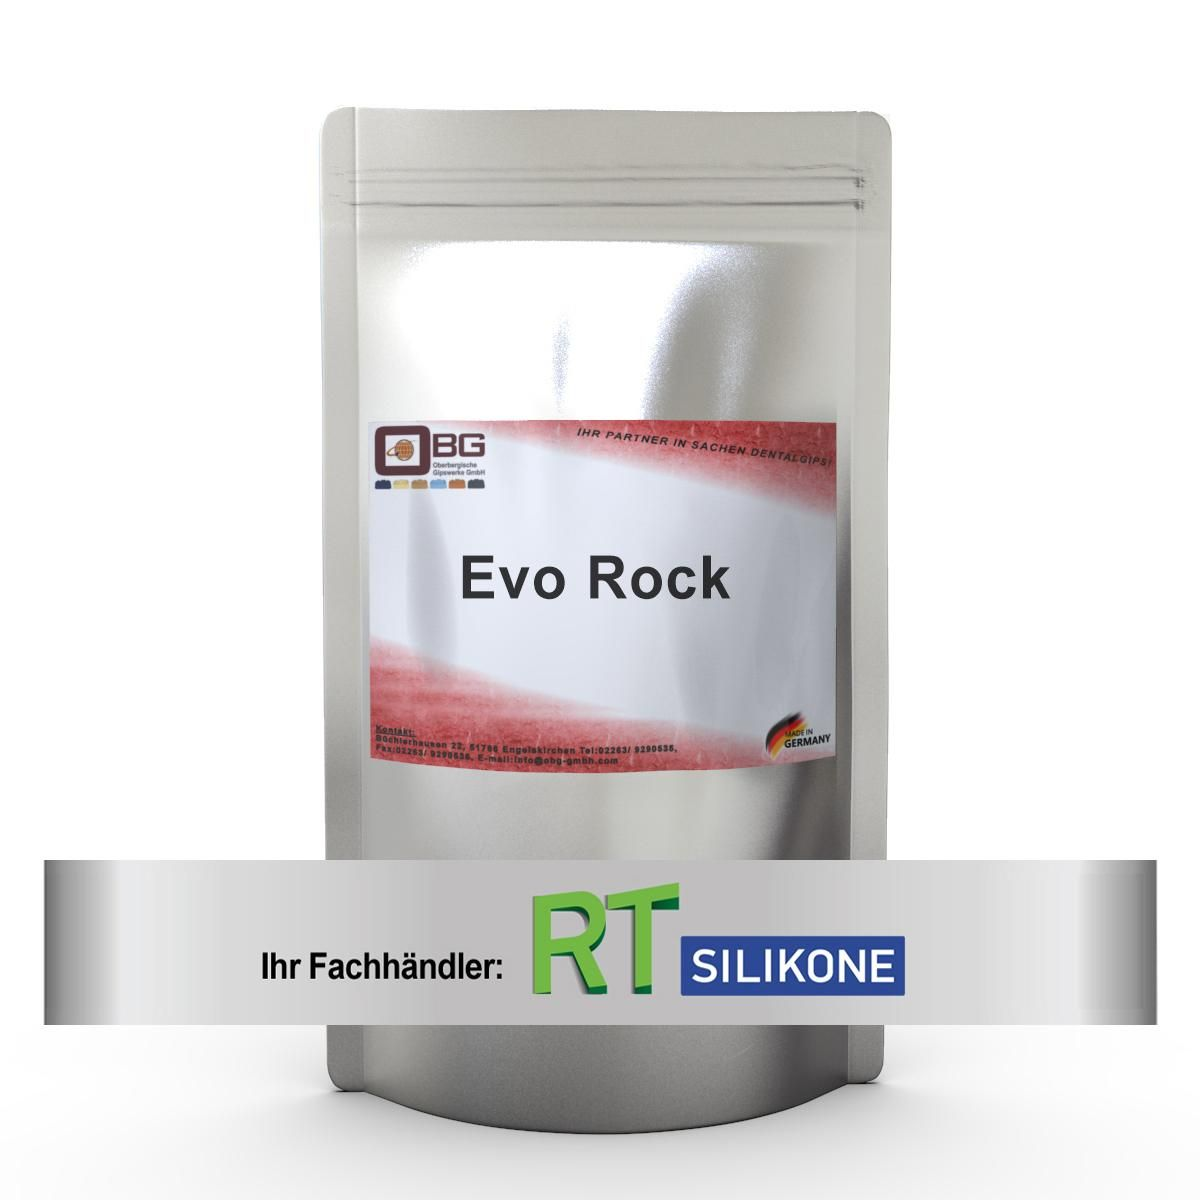 EVO Rock Zahnkranzgips light grey 5:1